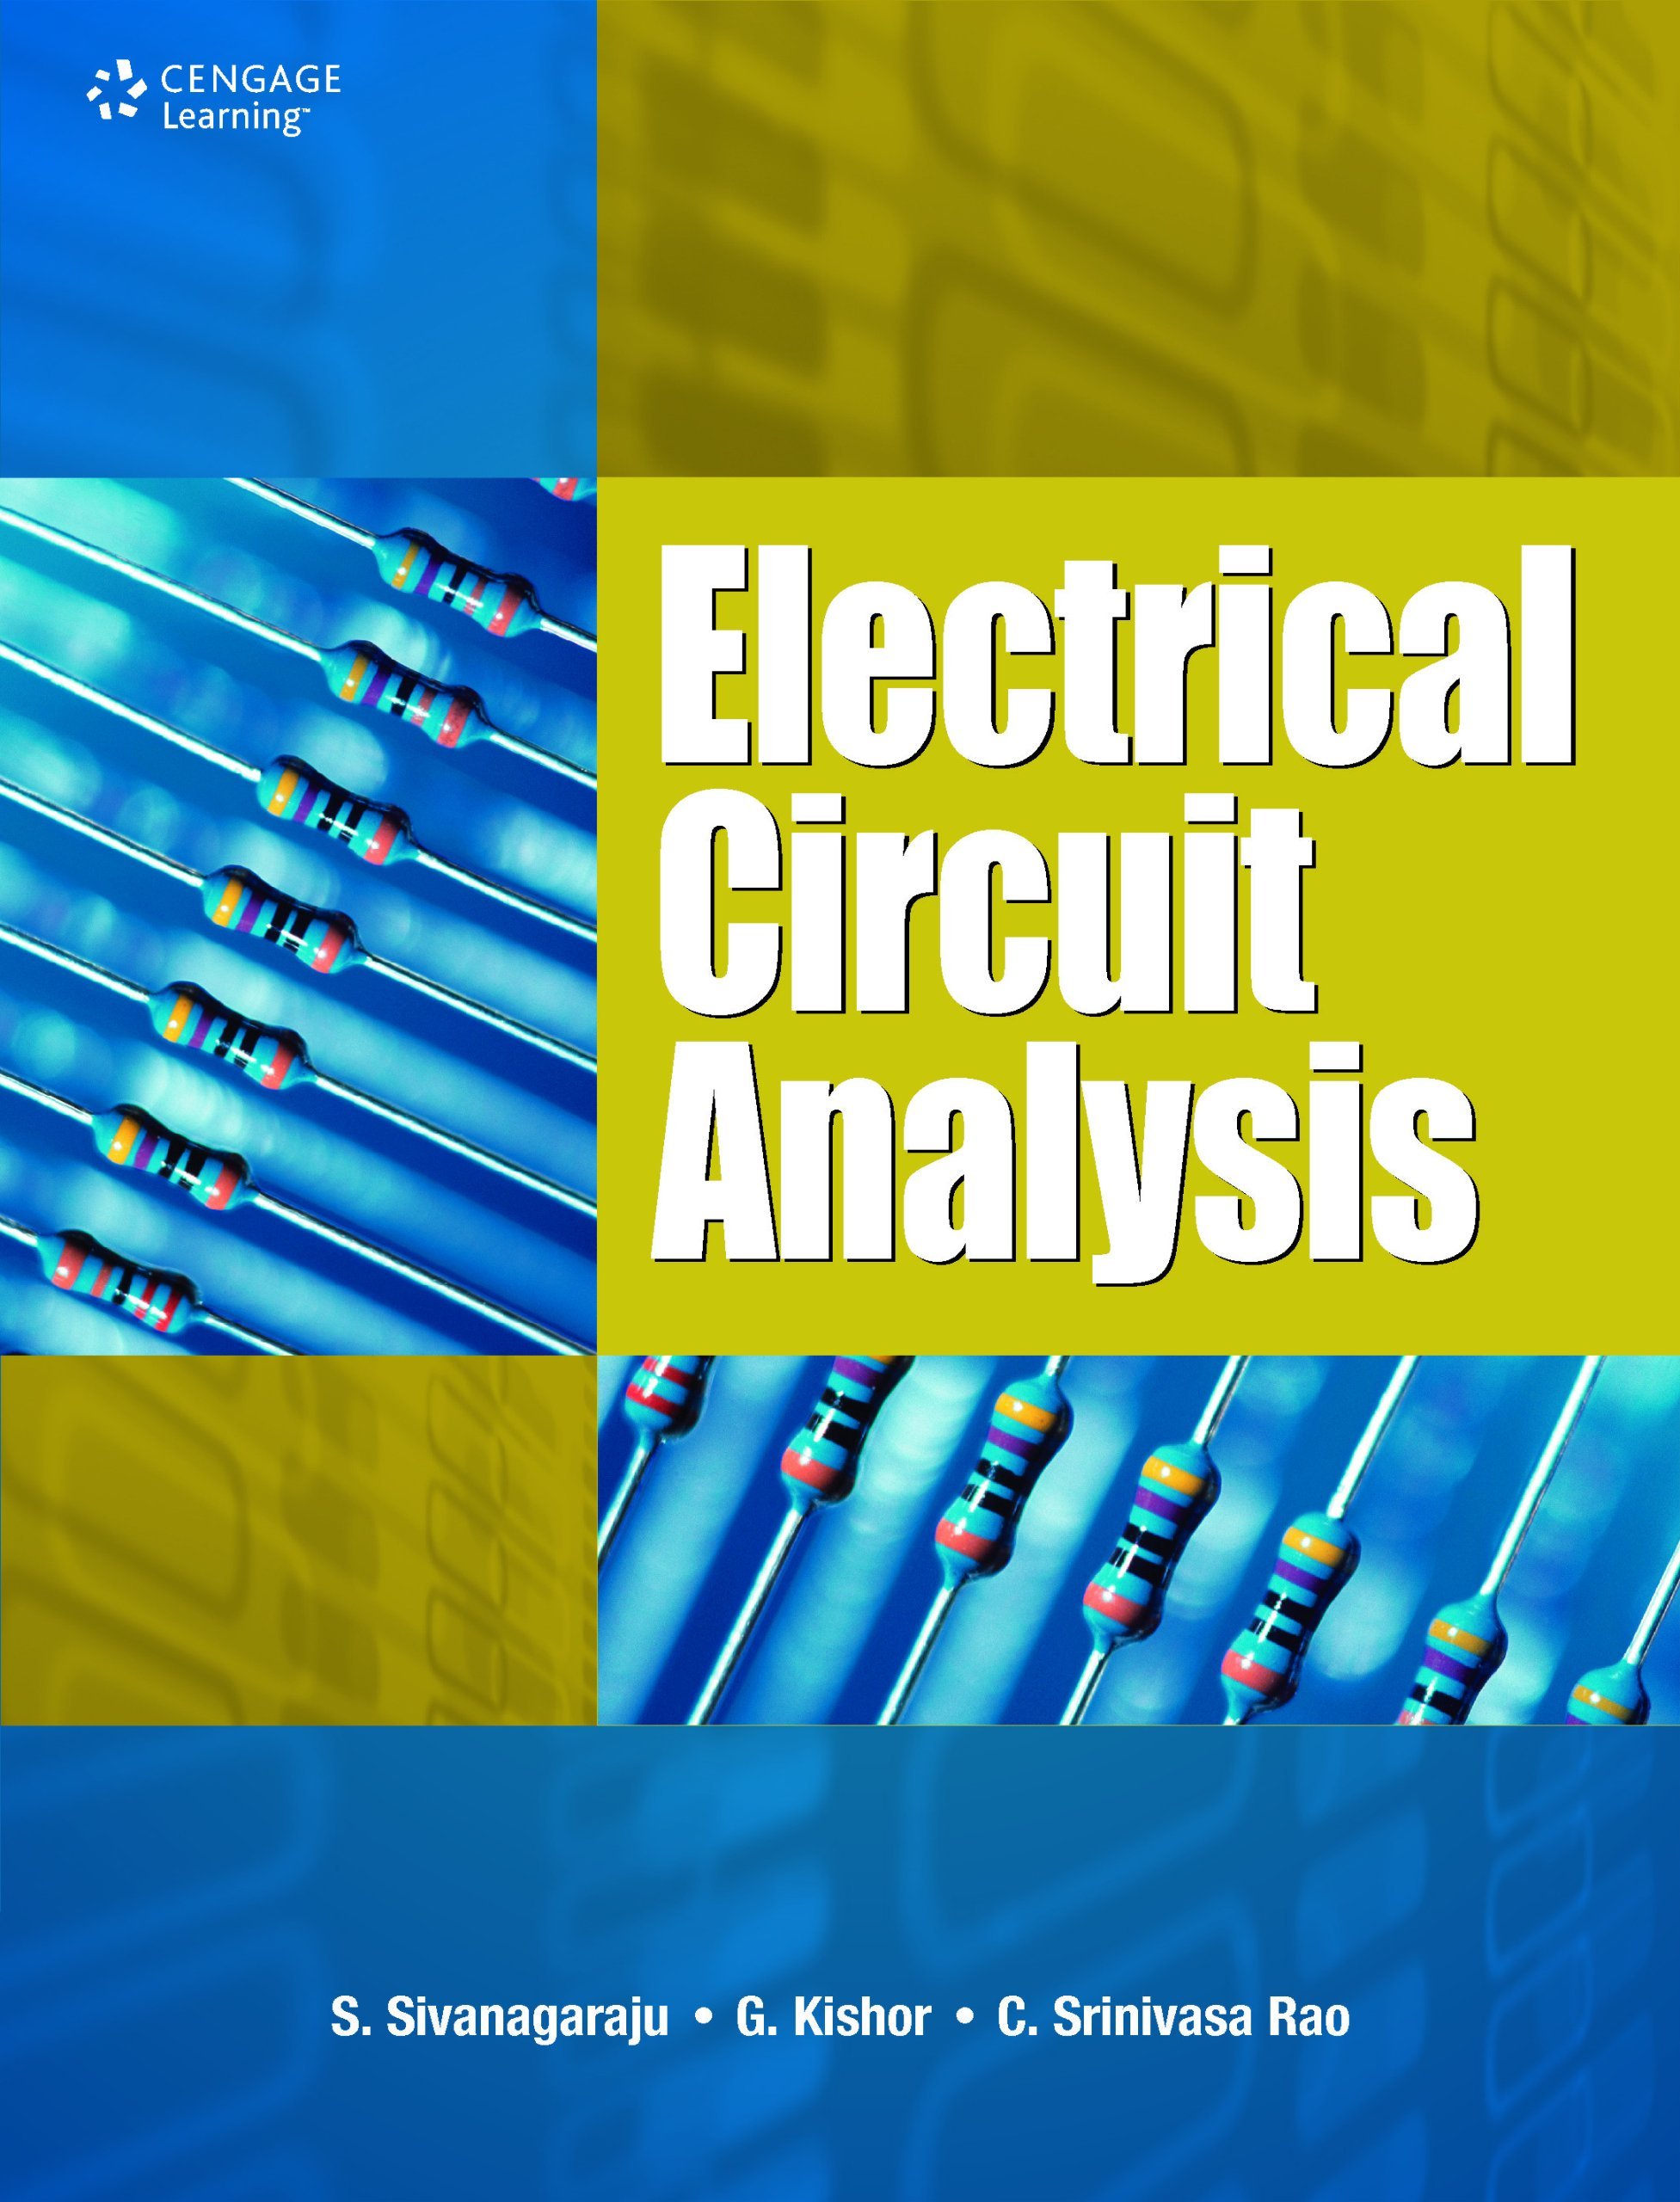 Buy Electrical Circuit Analysis Book Online At Low Prices In India Electric App For Windows The Store Reviews Ratings